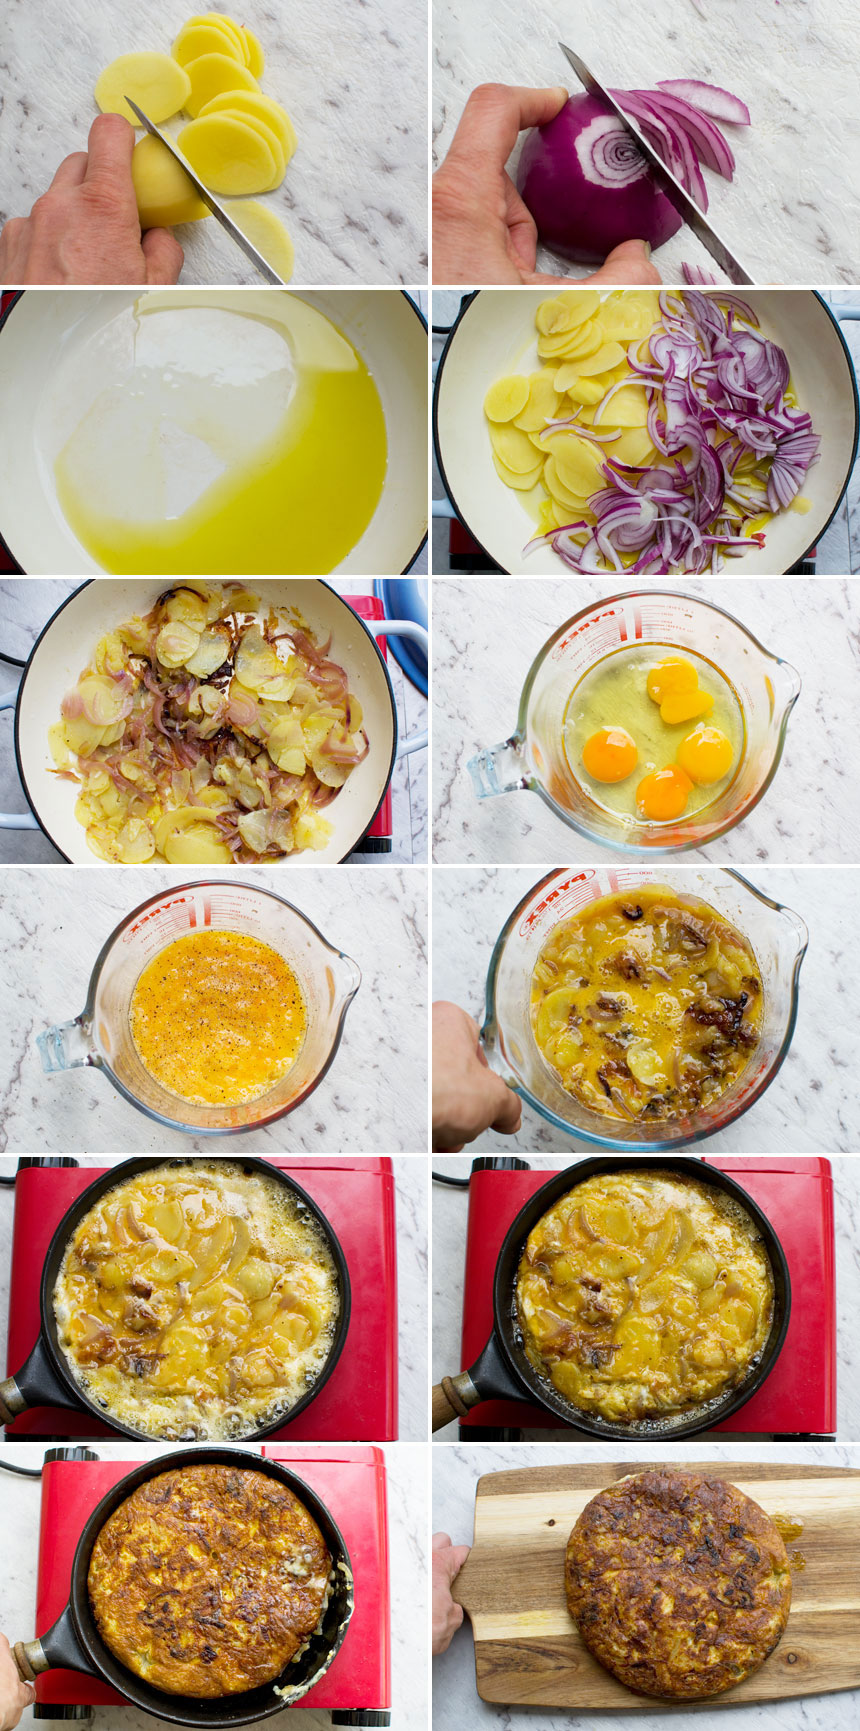 A series of images showing how to make a Spanish omelette